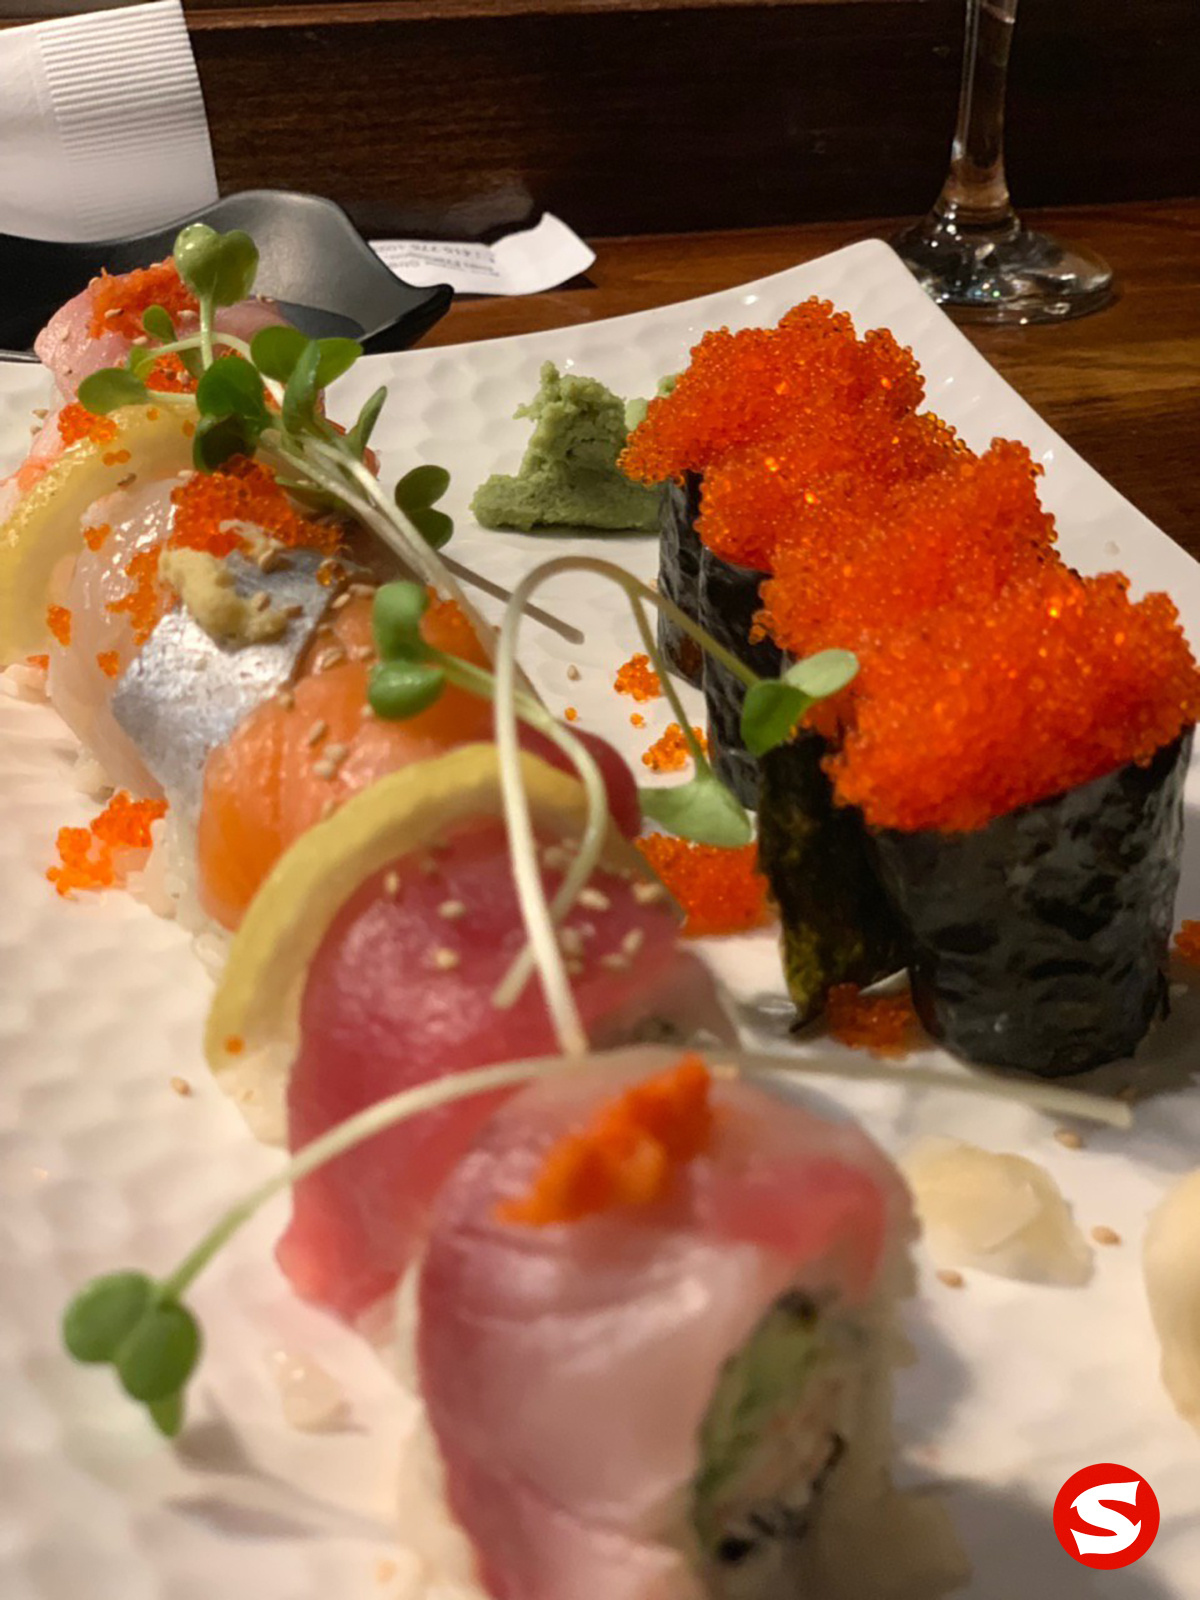 tobiko (flying fish roe) gunkan, avocado uramaki (inside out roll) with hamachi (yellowtail), ebi (shrimp), ika (squid), aji (mackerel), sake (salmon), maguro (tuna back), tai (sea bream) topping